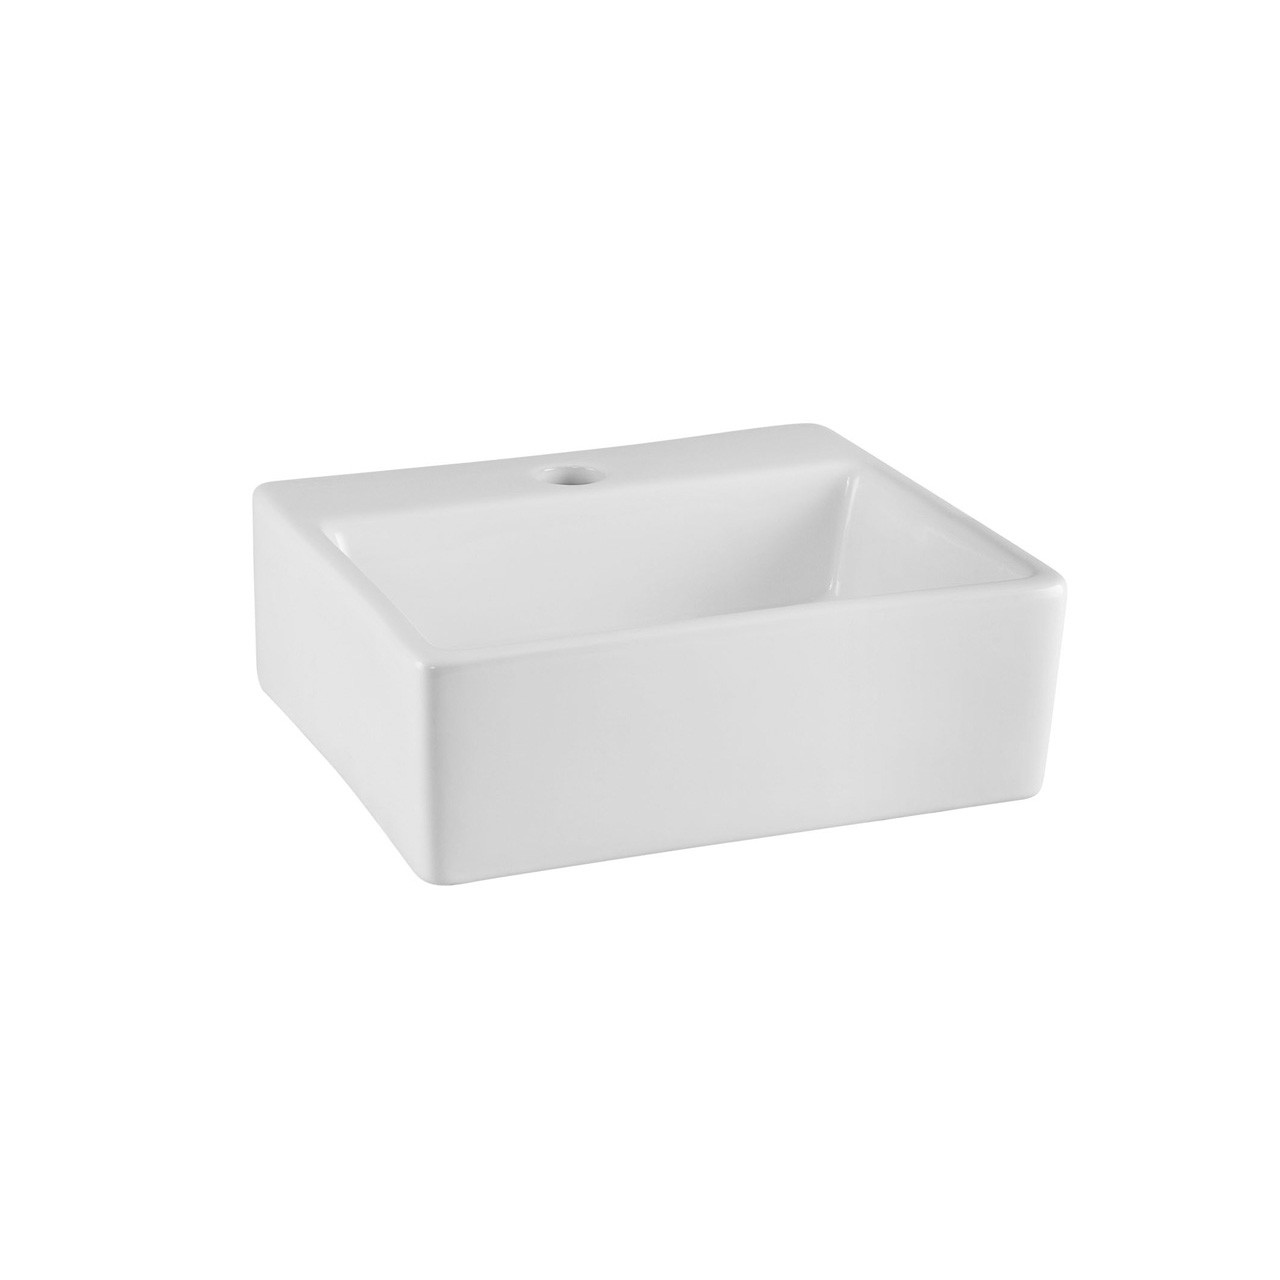 Premier Rectangular Basin 340mm x 305mm x 125mm - NBV106